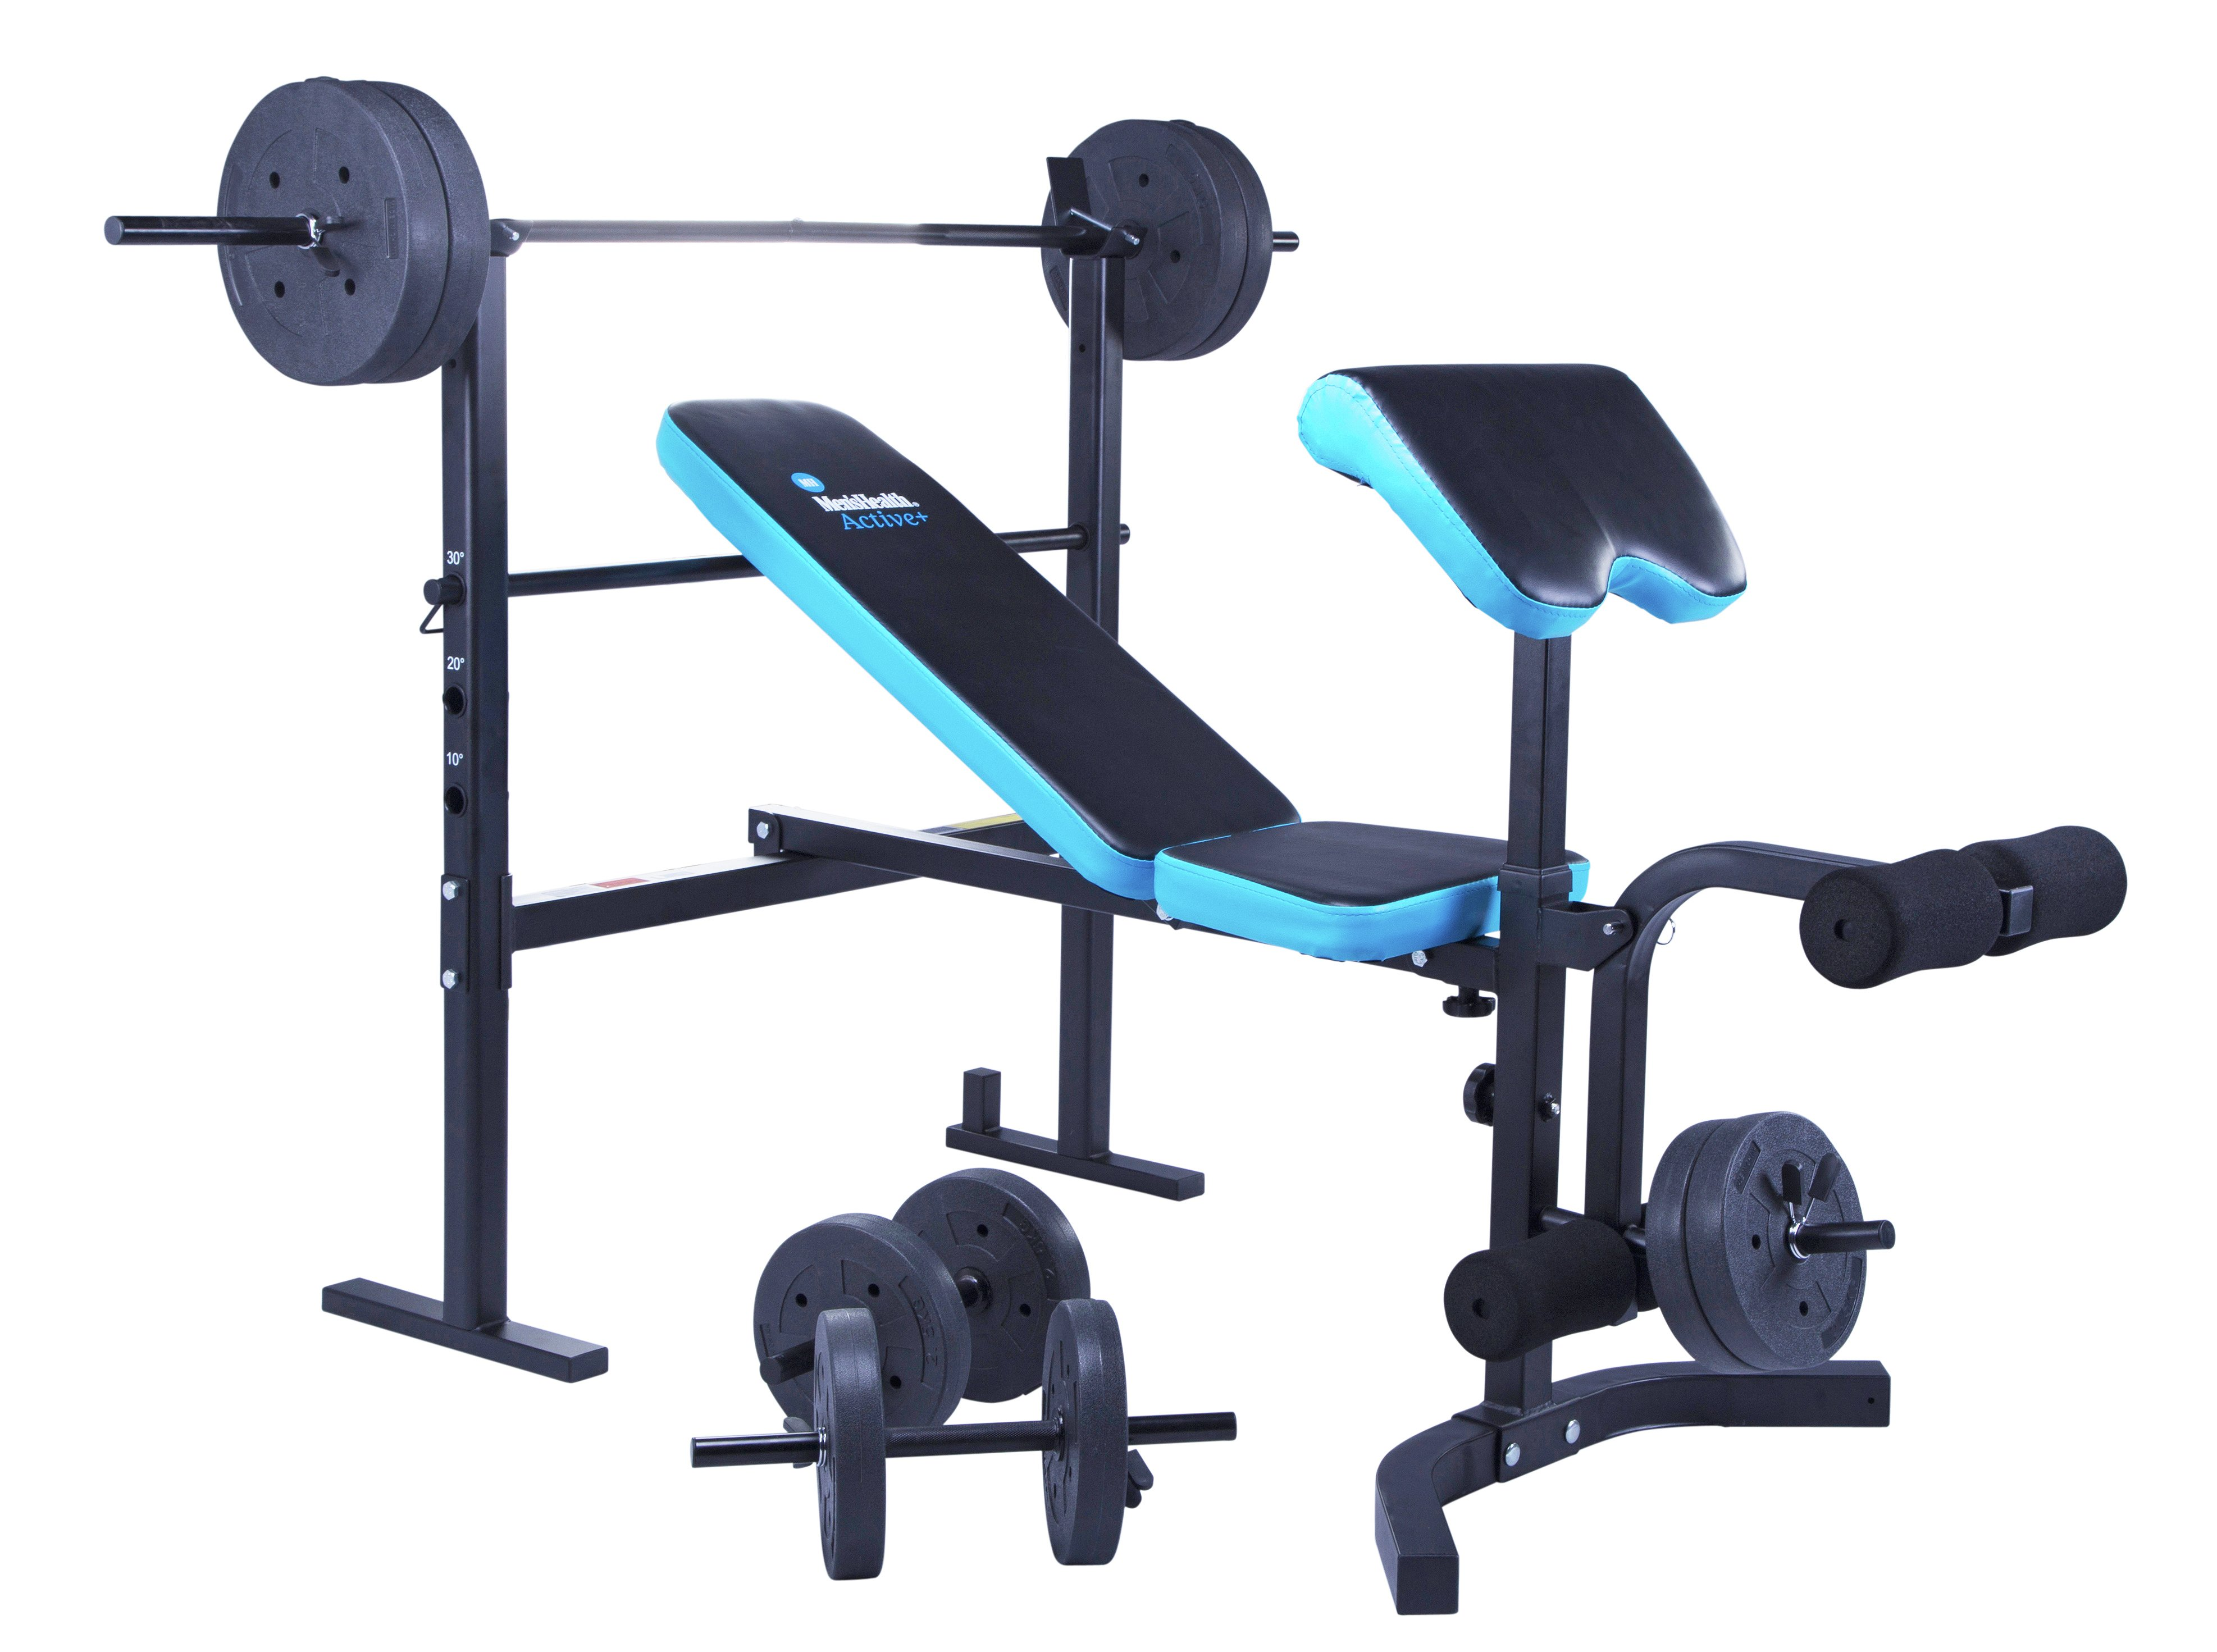 163 109 99 Men S Health Folding Workout Bench With 35kg